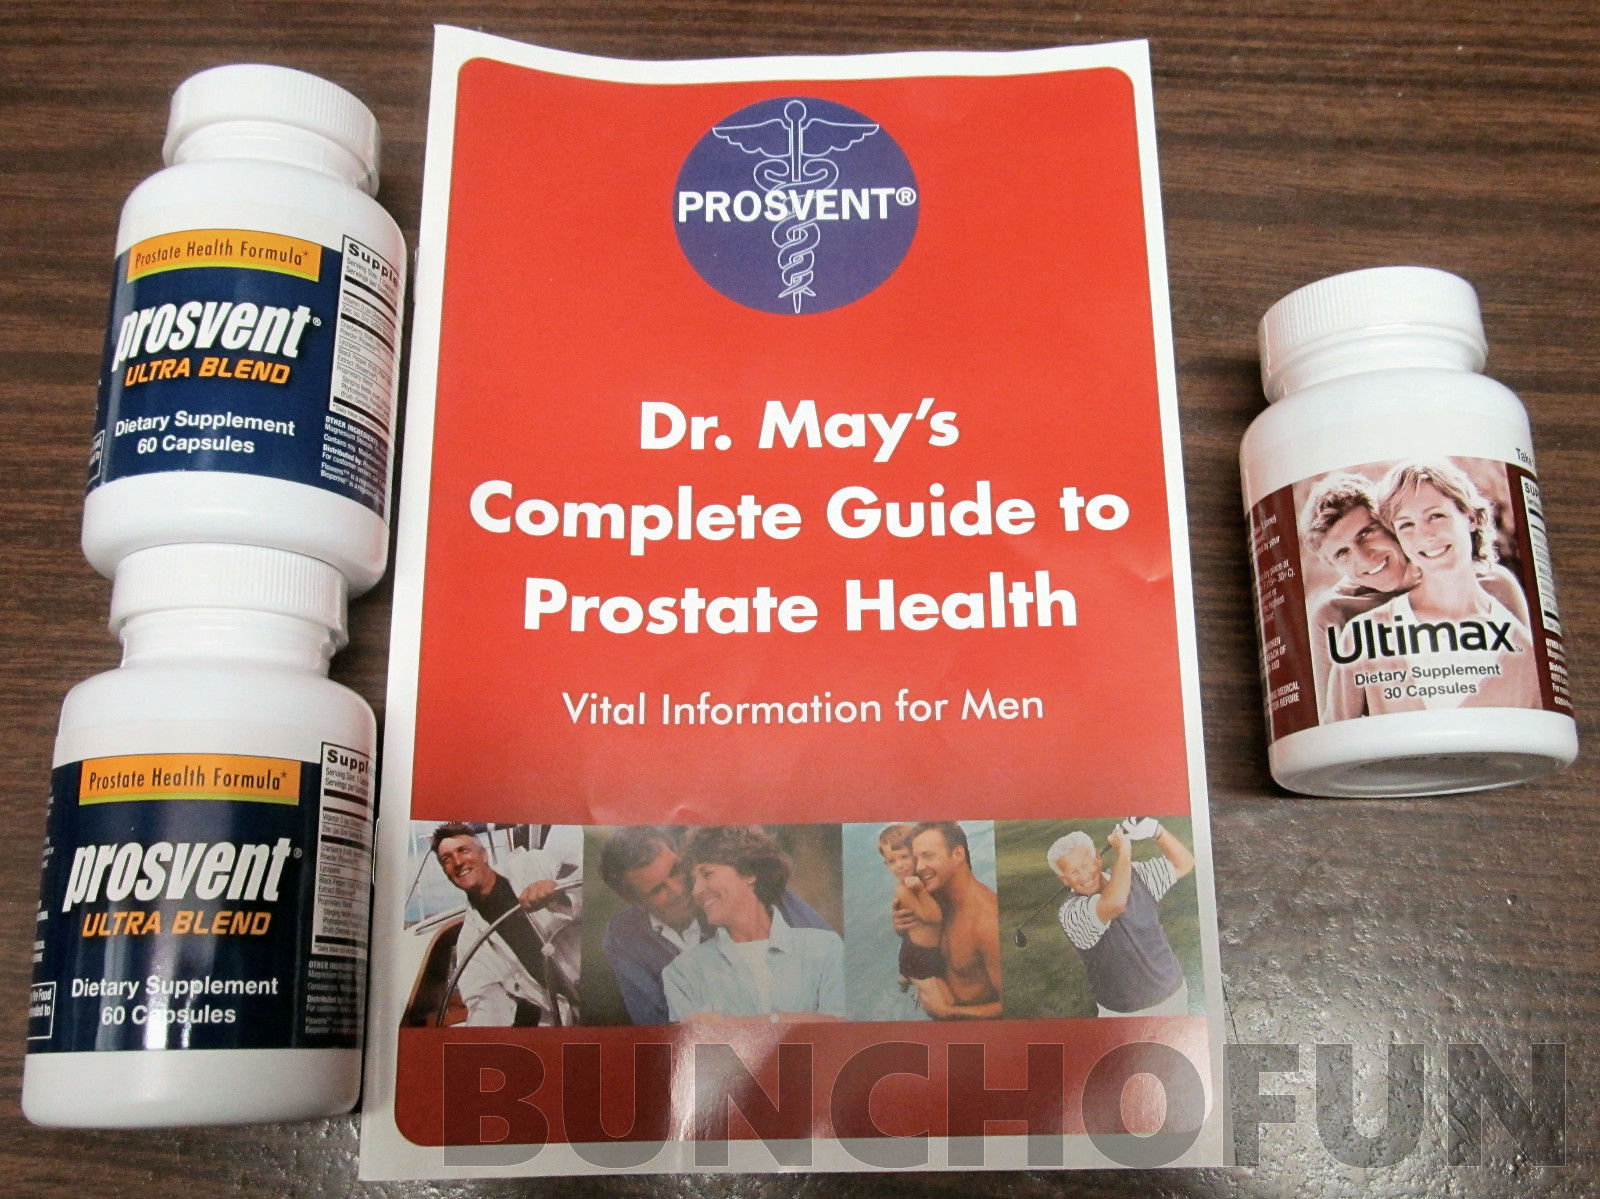 NEW Prosvent ULTRA Natural Prostate Health Supplement  2 Bottles + Ultimax Bonus